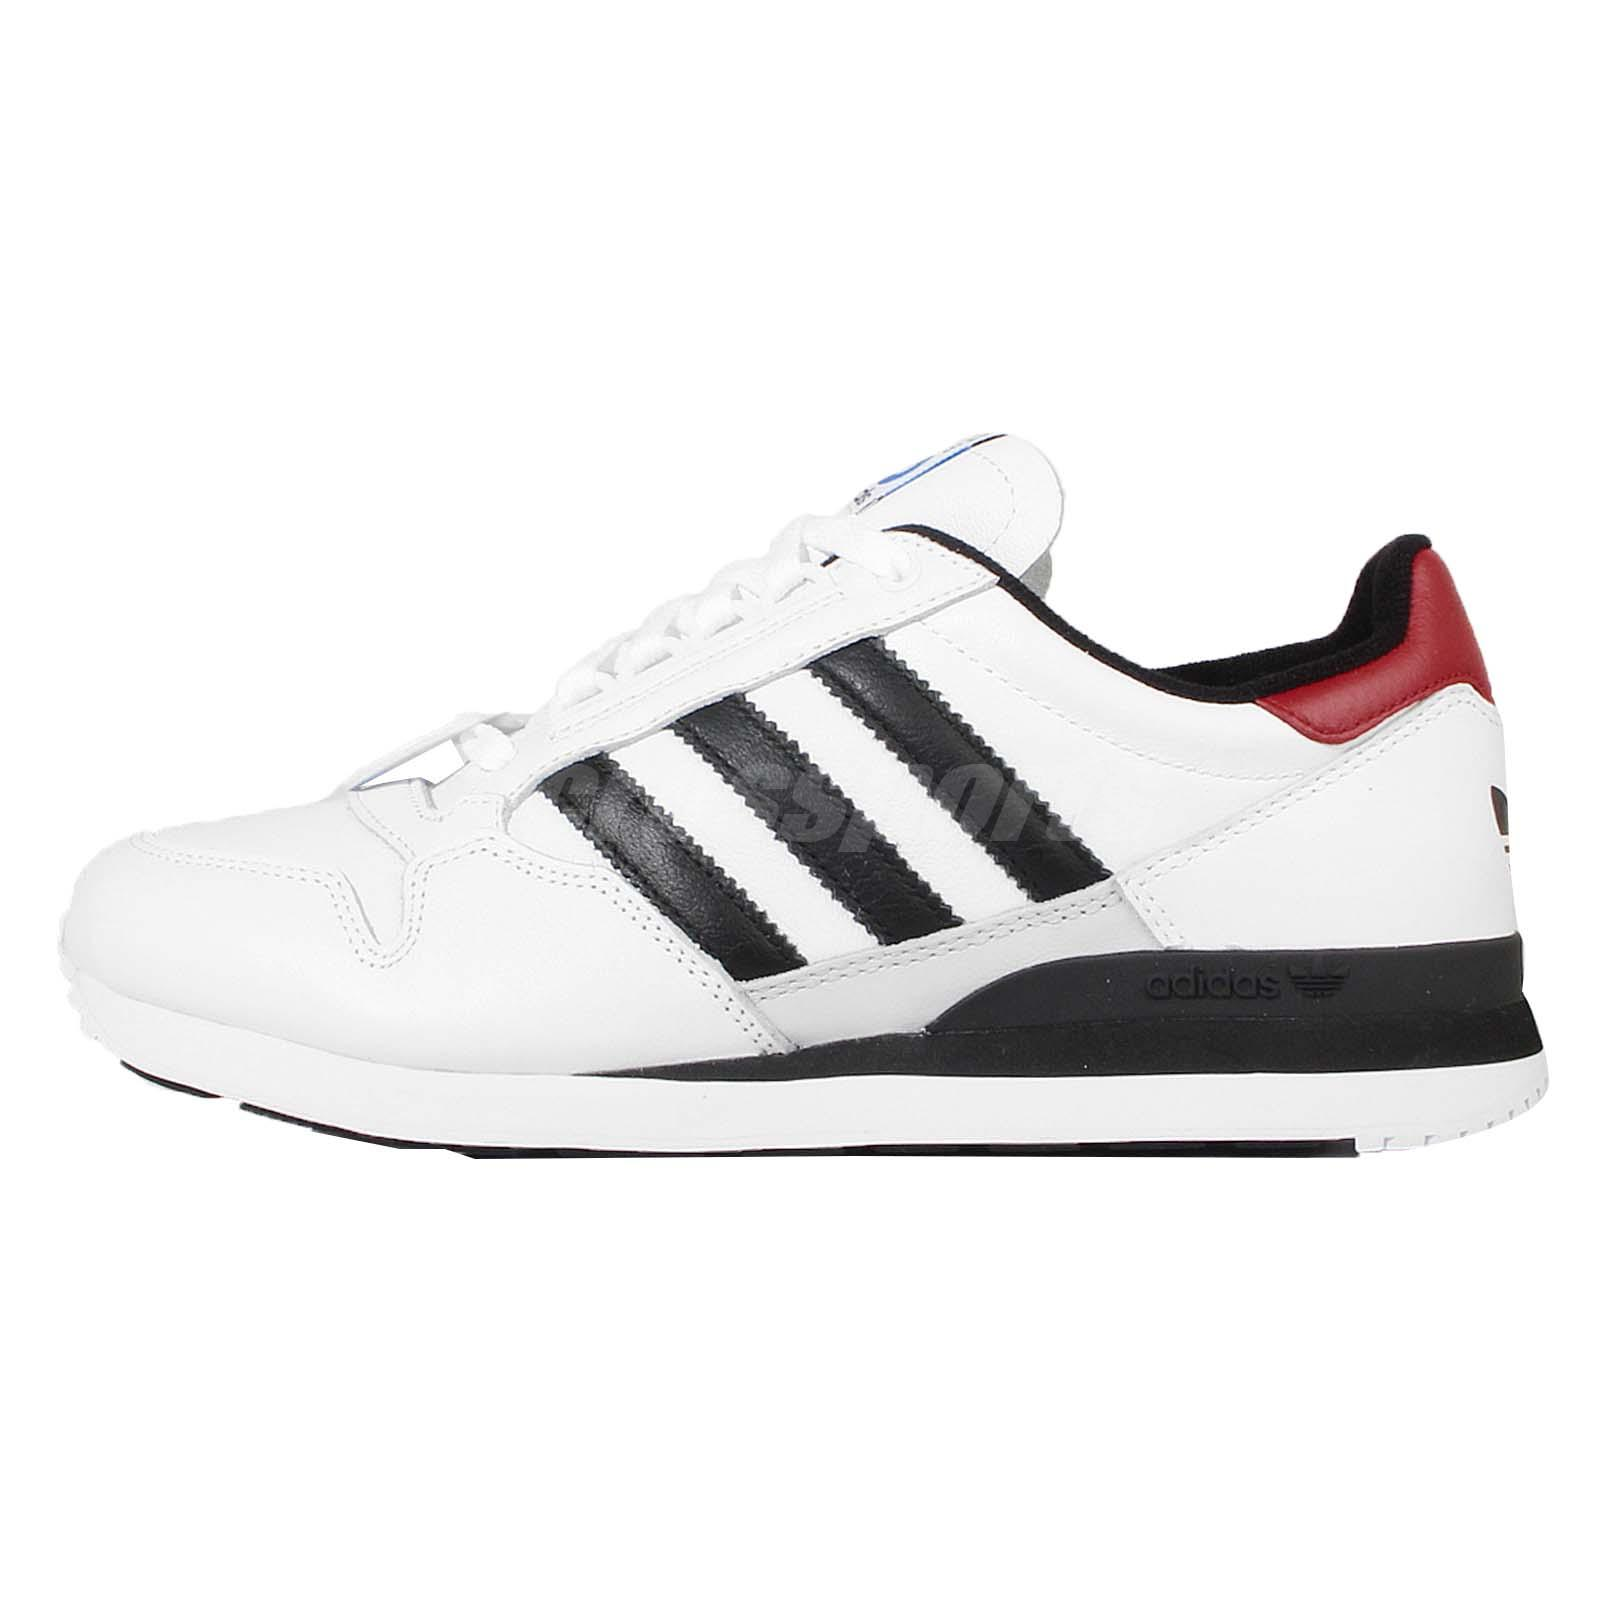 fba365882c6d3 Buy adidas zx 500 mens shoes   OFF36% Discounted